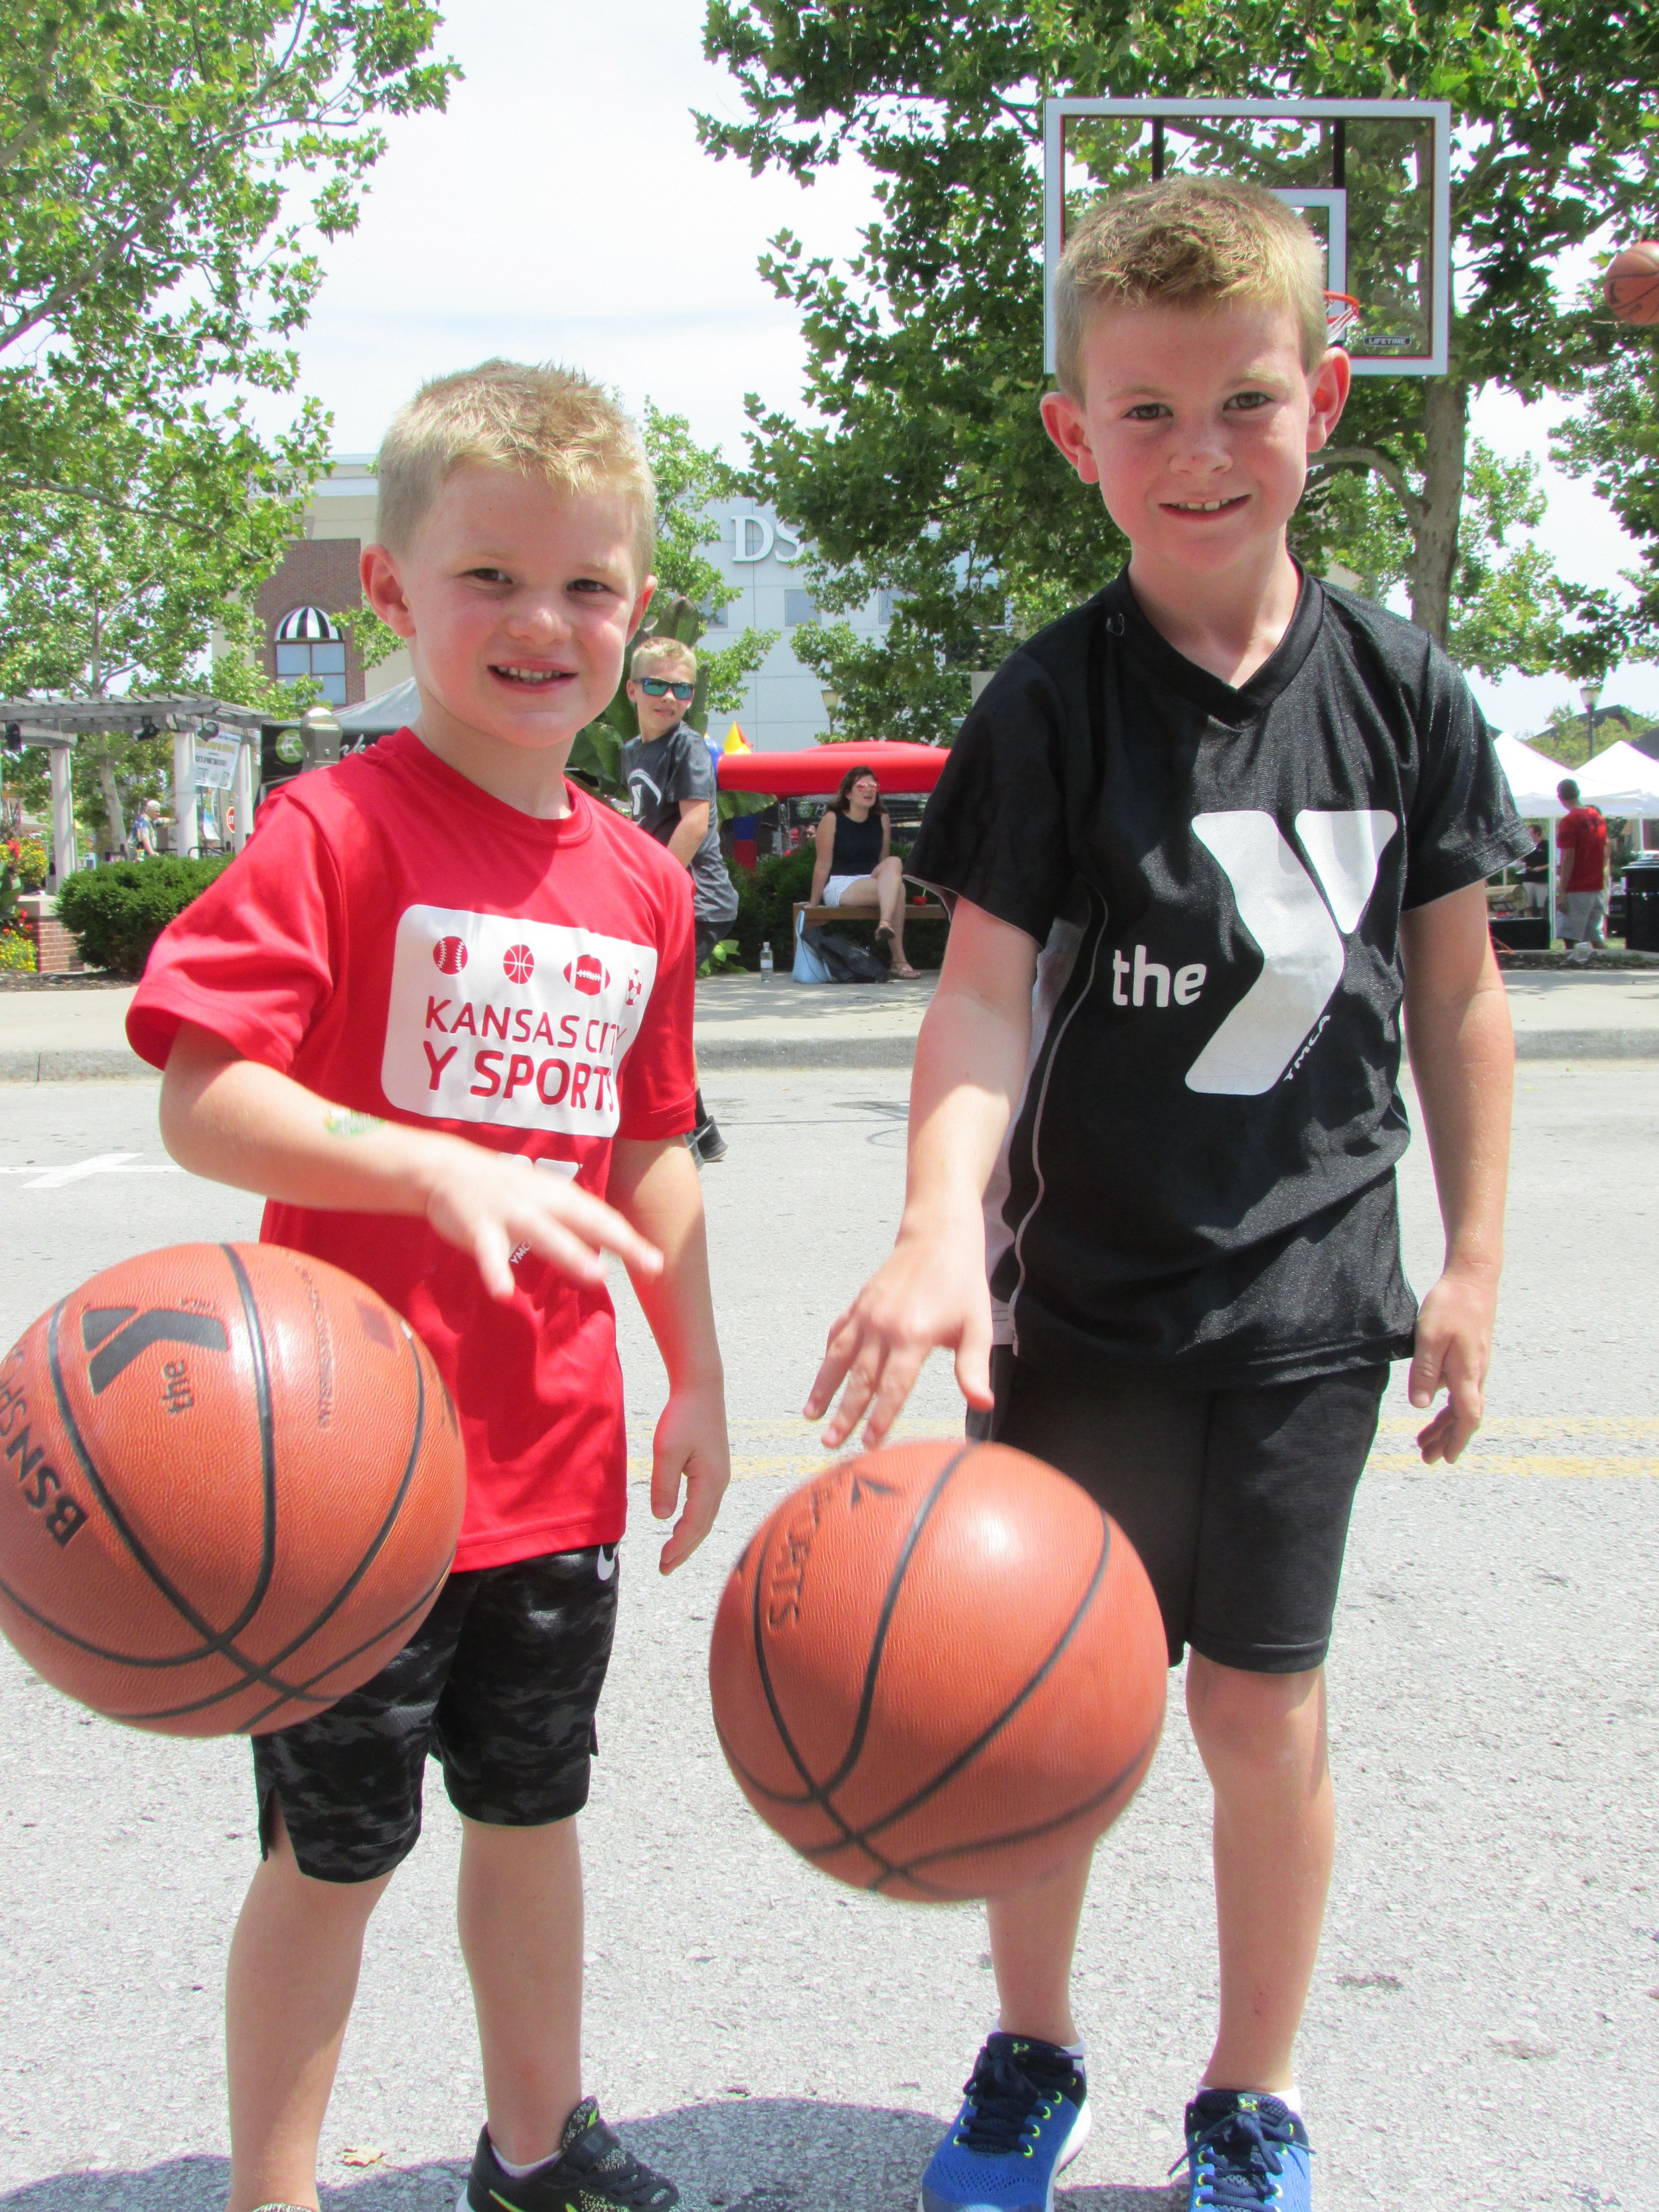 KALEB HUFFMAN/ Special to the Citizen  Riverside residents Thatcher Farrow, 5, left, and Broderick Farrow, 8, dribble a basketball during the 4th annual Platte County Sports Commission Youth Sports Festival held on Saturday Aug. 4 at Zona Rosa Town Center.